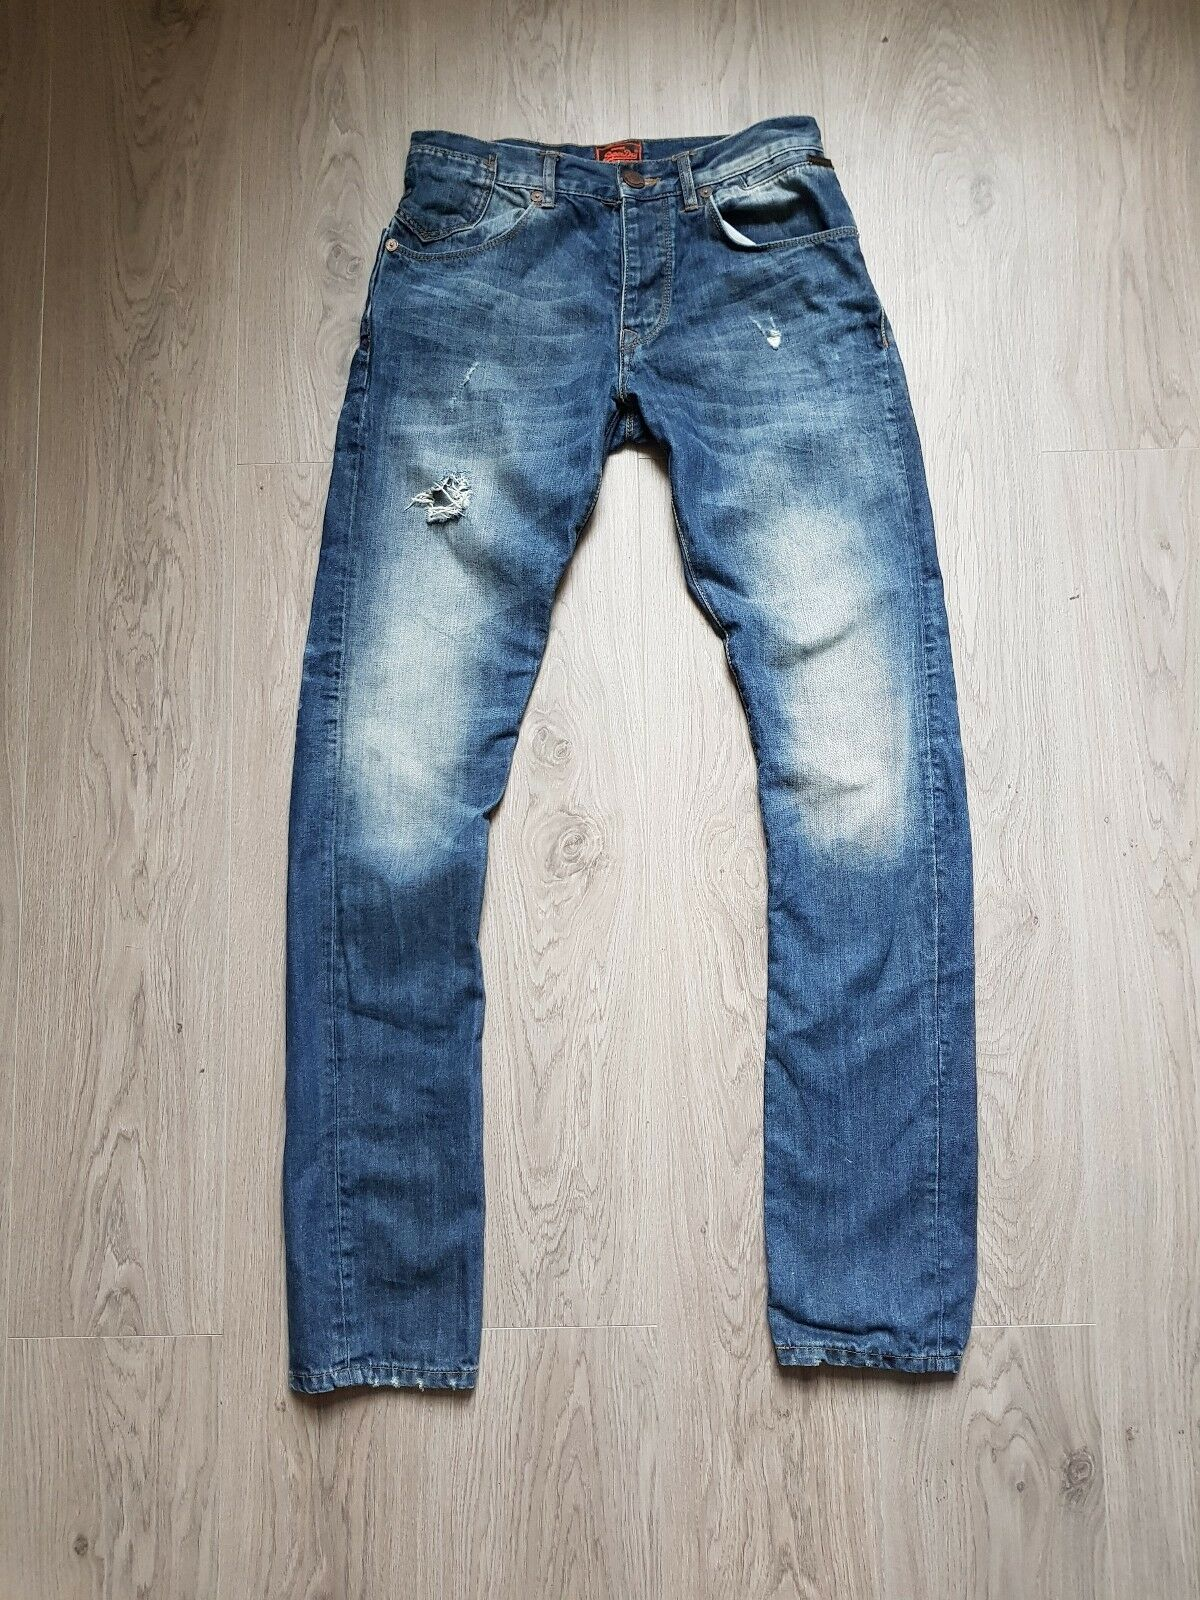 Mens Superdry Jeans - Size Medium 30inch Waist - RRP  (Worn once)